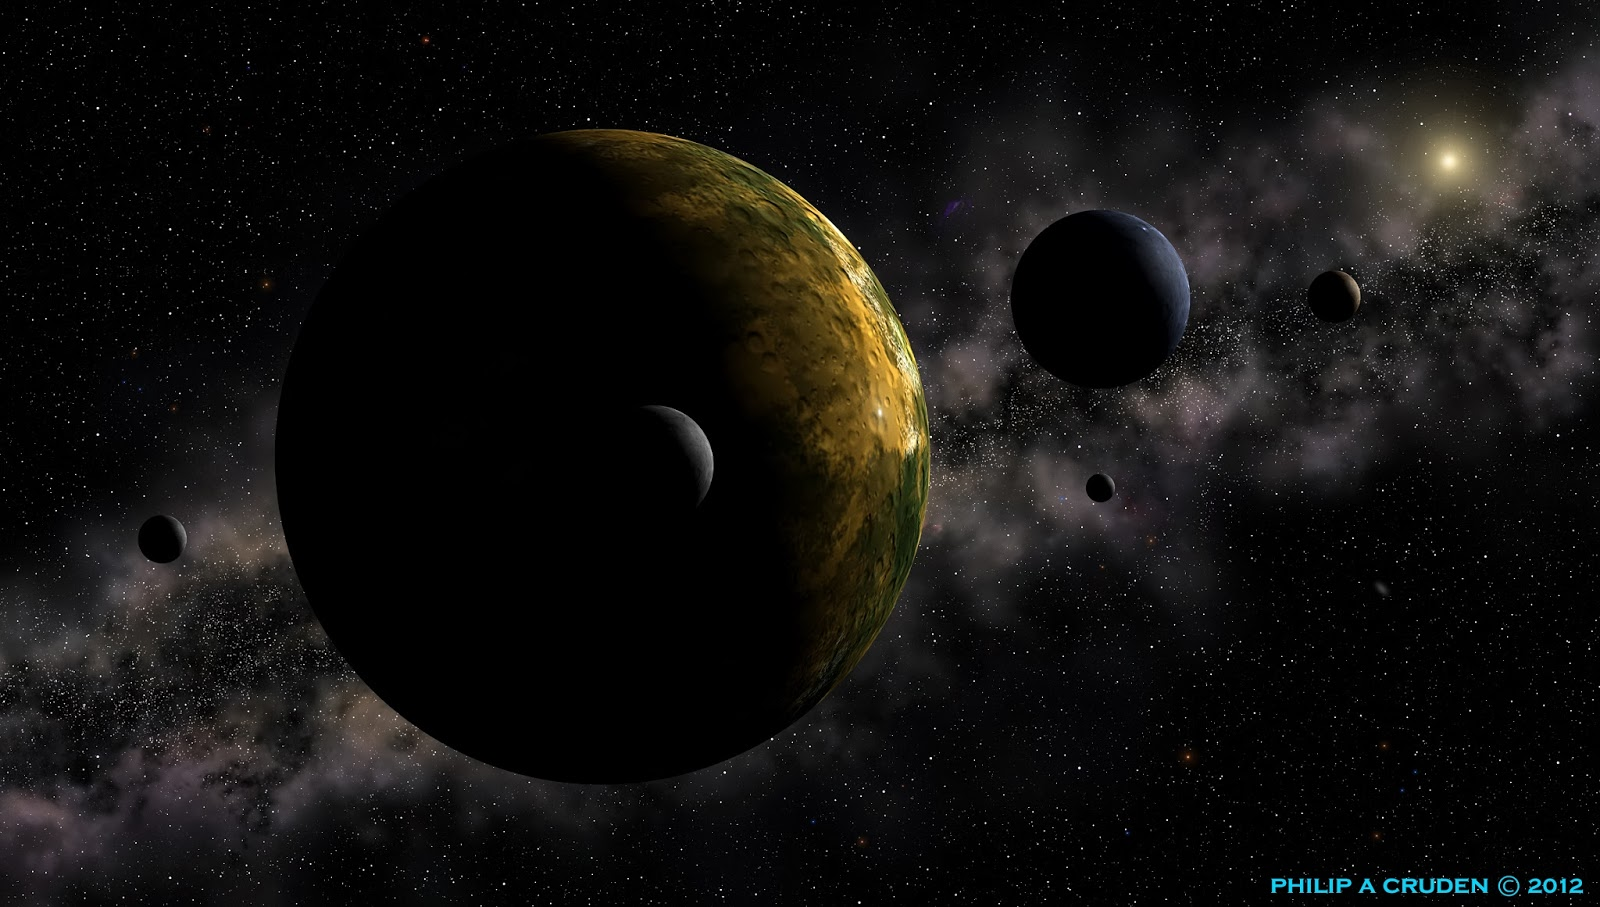 Pluto Moons Nix And Hydra S: Billion Planets Astronomy And Art: Exoplanets Planets